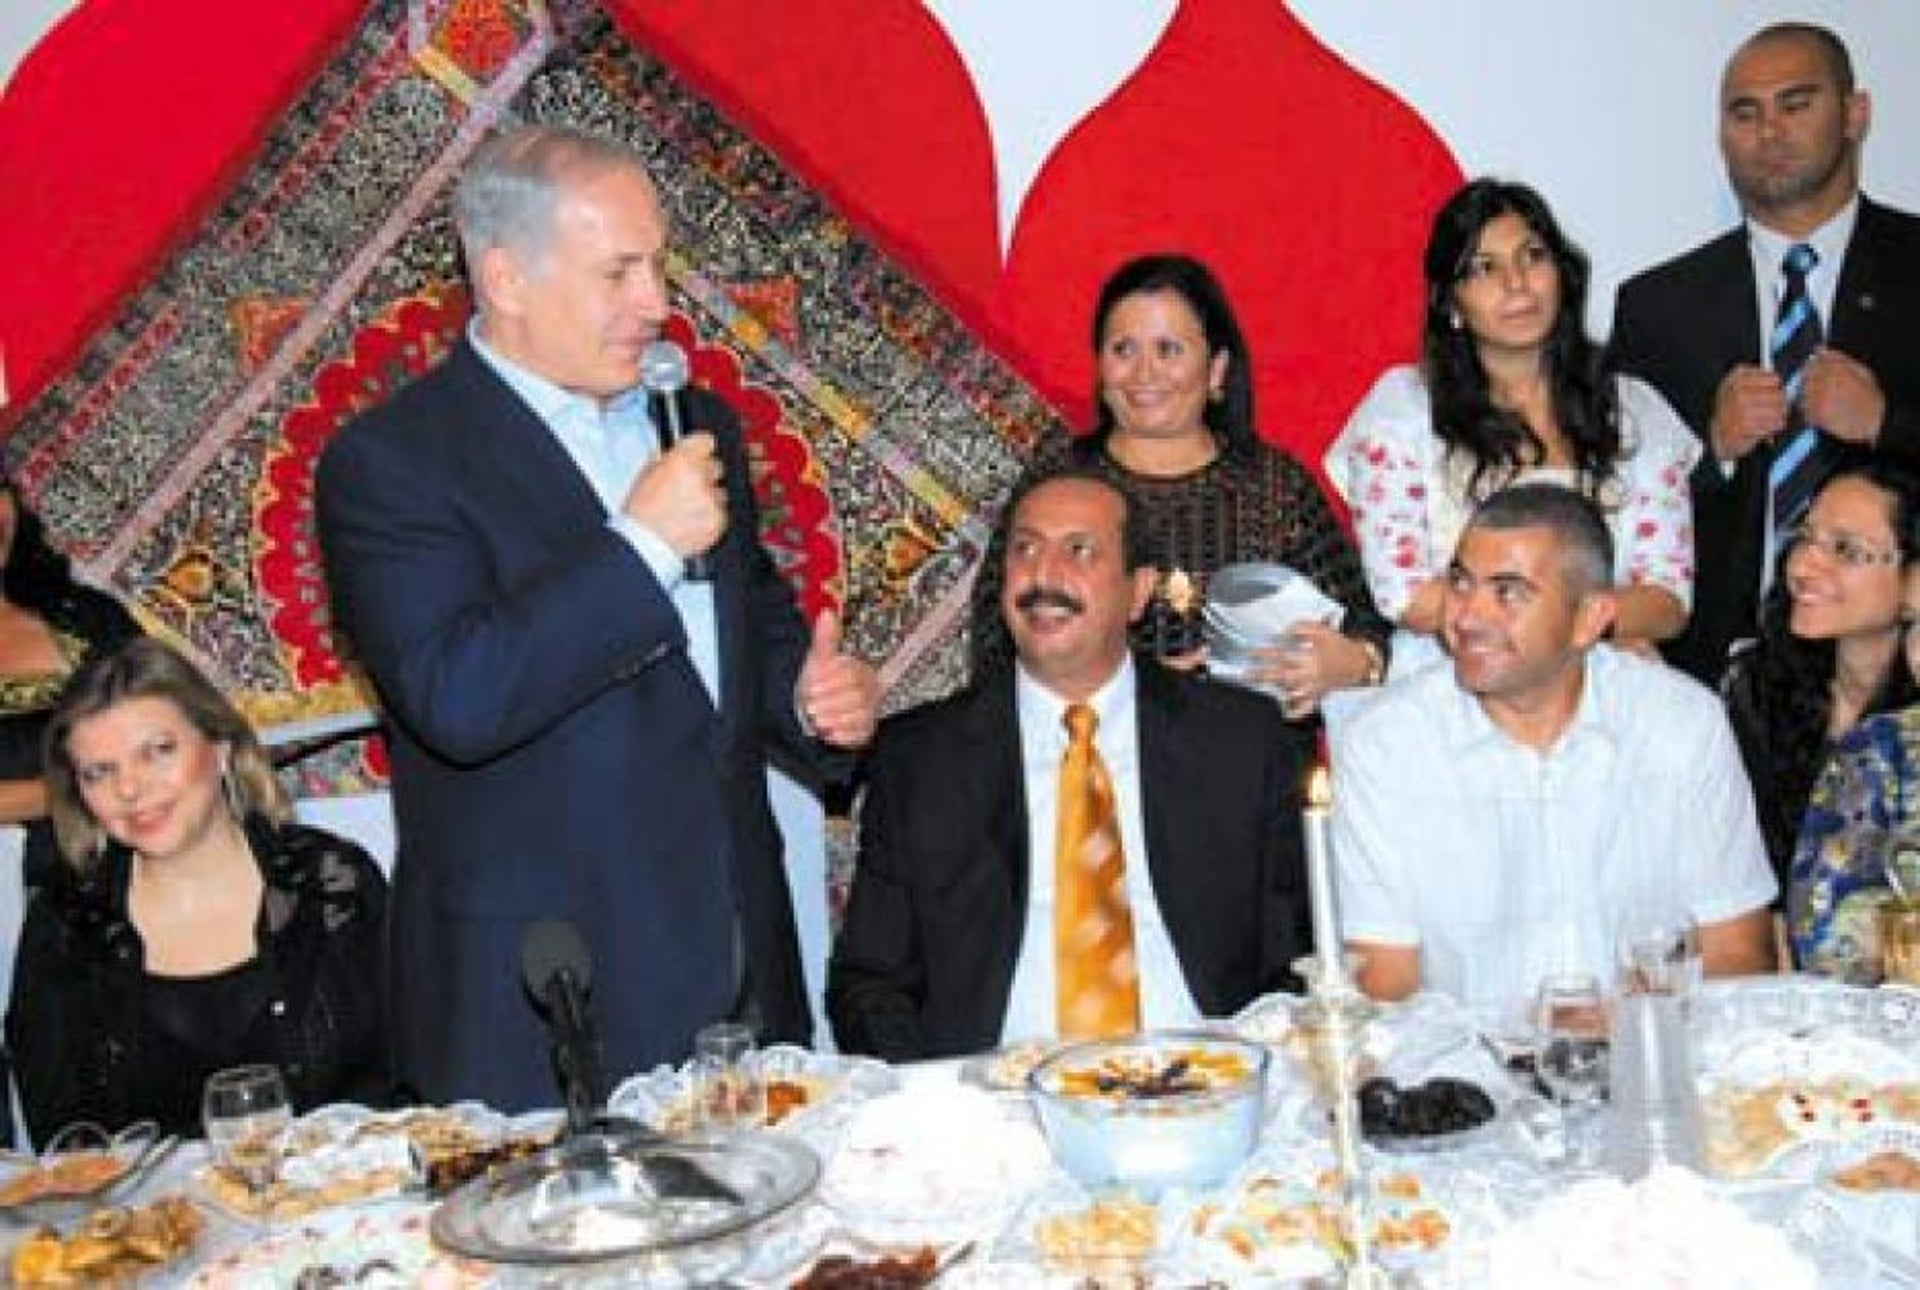 Benjamin Netanyahu, standing, and Avi Fahima, bottom right in white shirt, at an event in Or Akiva, 2010.